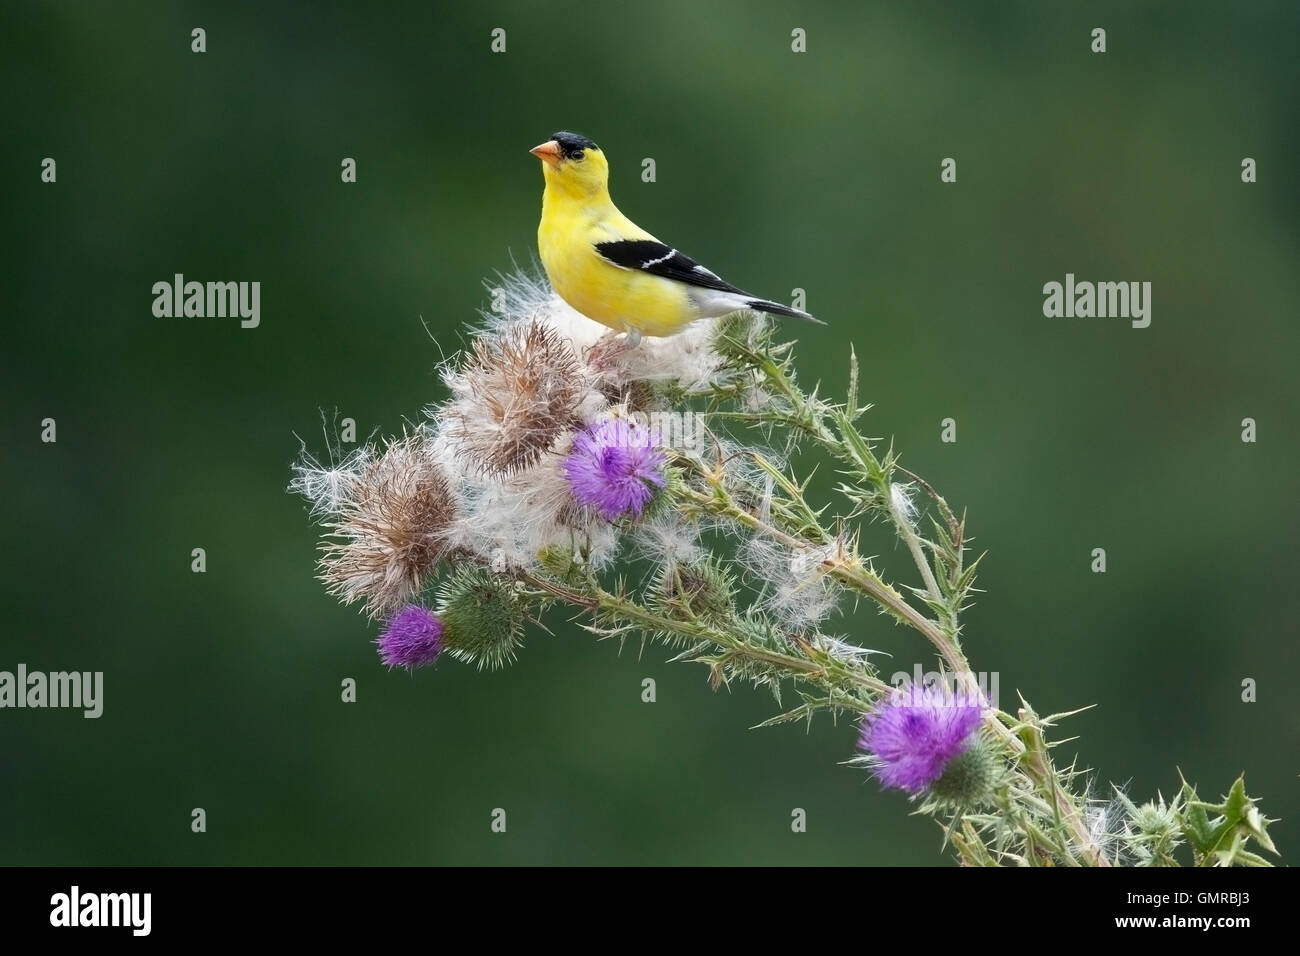 American goldfinch perches on thistle plant - Stock Image